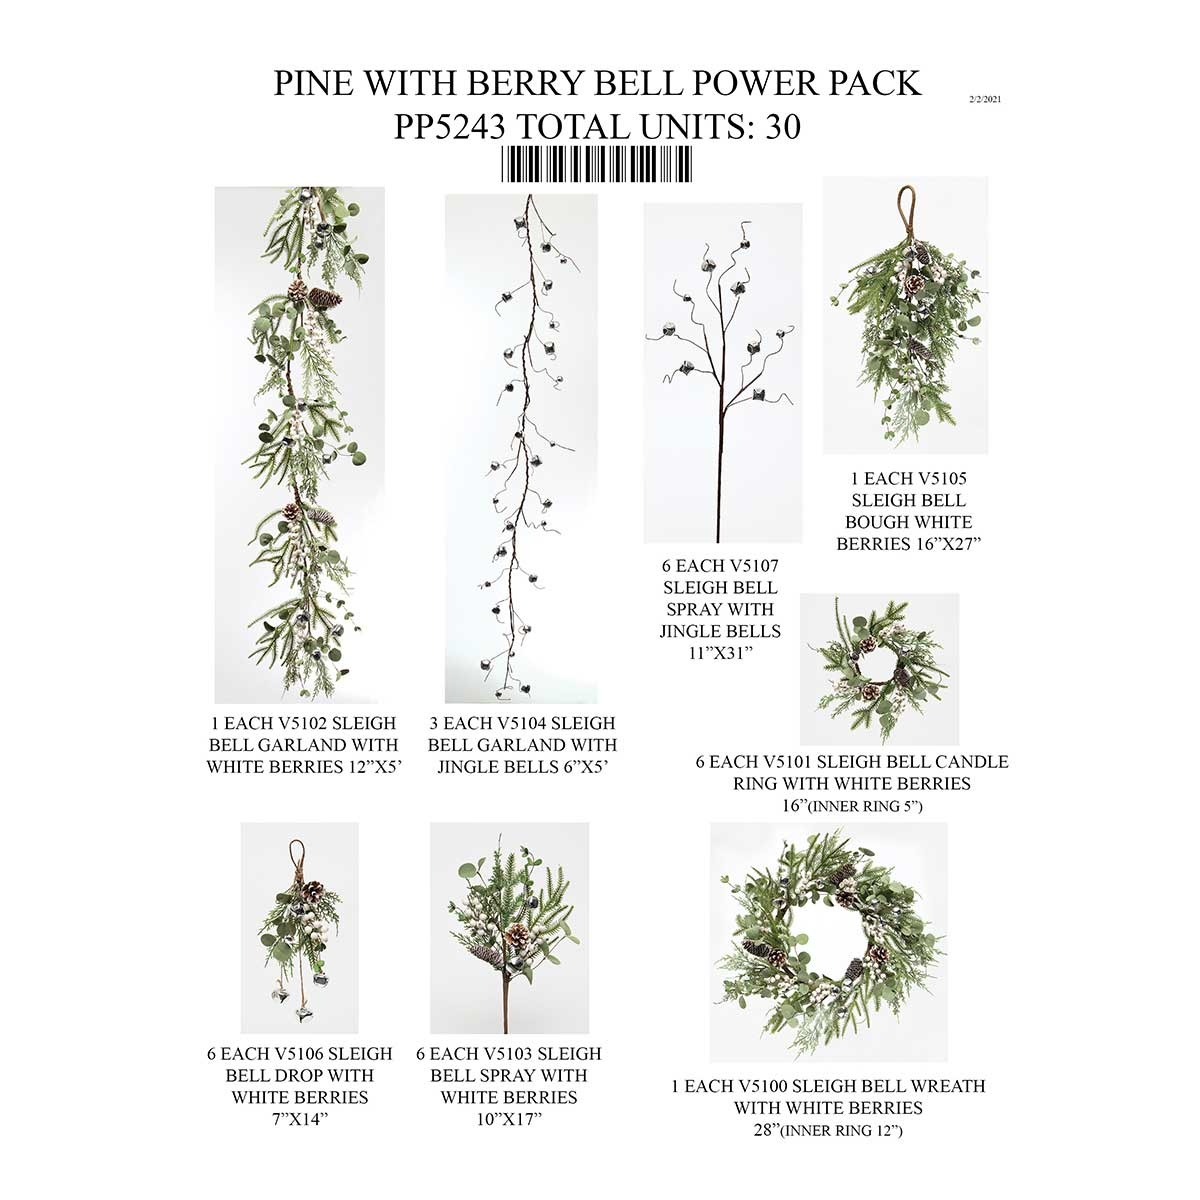 PINE WITH BERRY AND BELLS POWER PACK 30 UNITS PP5243